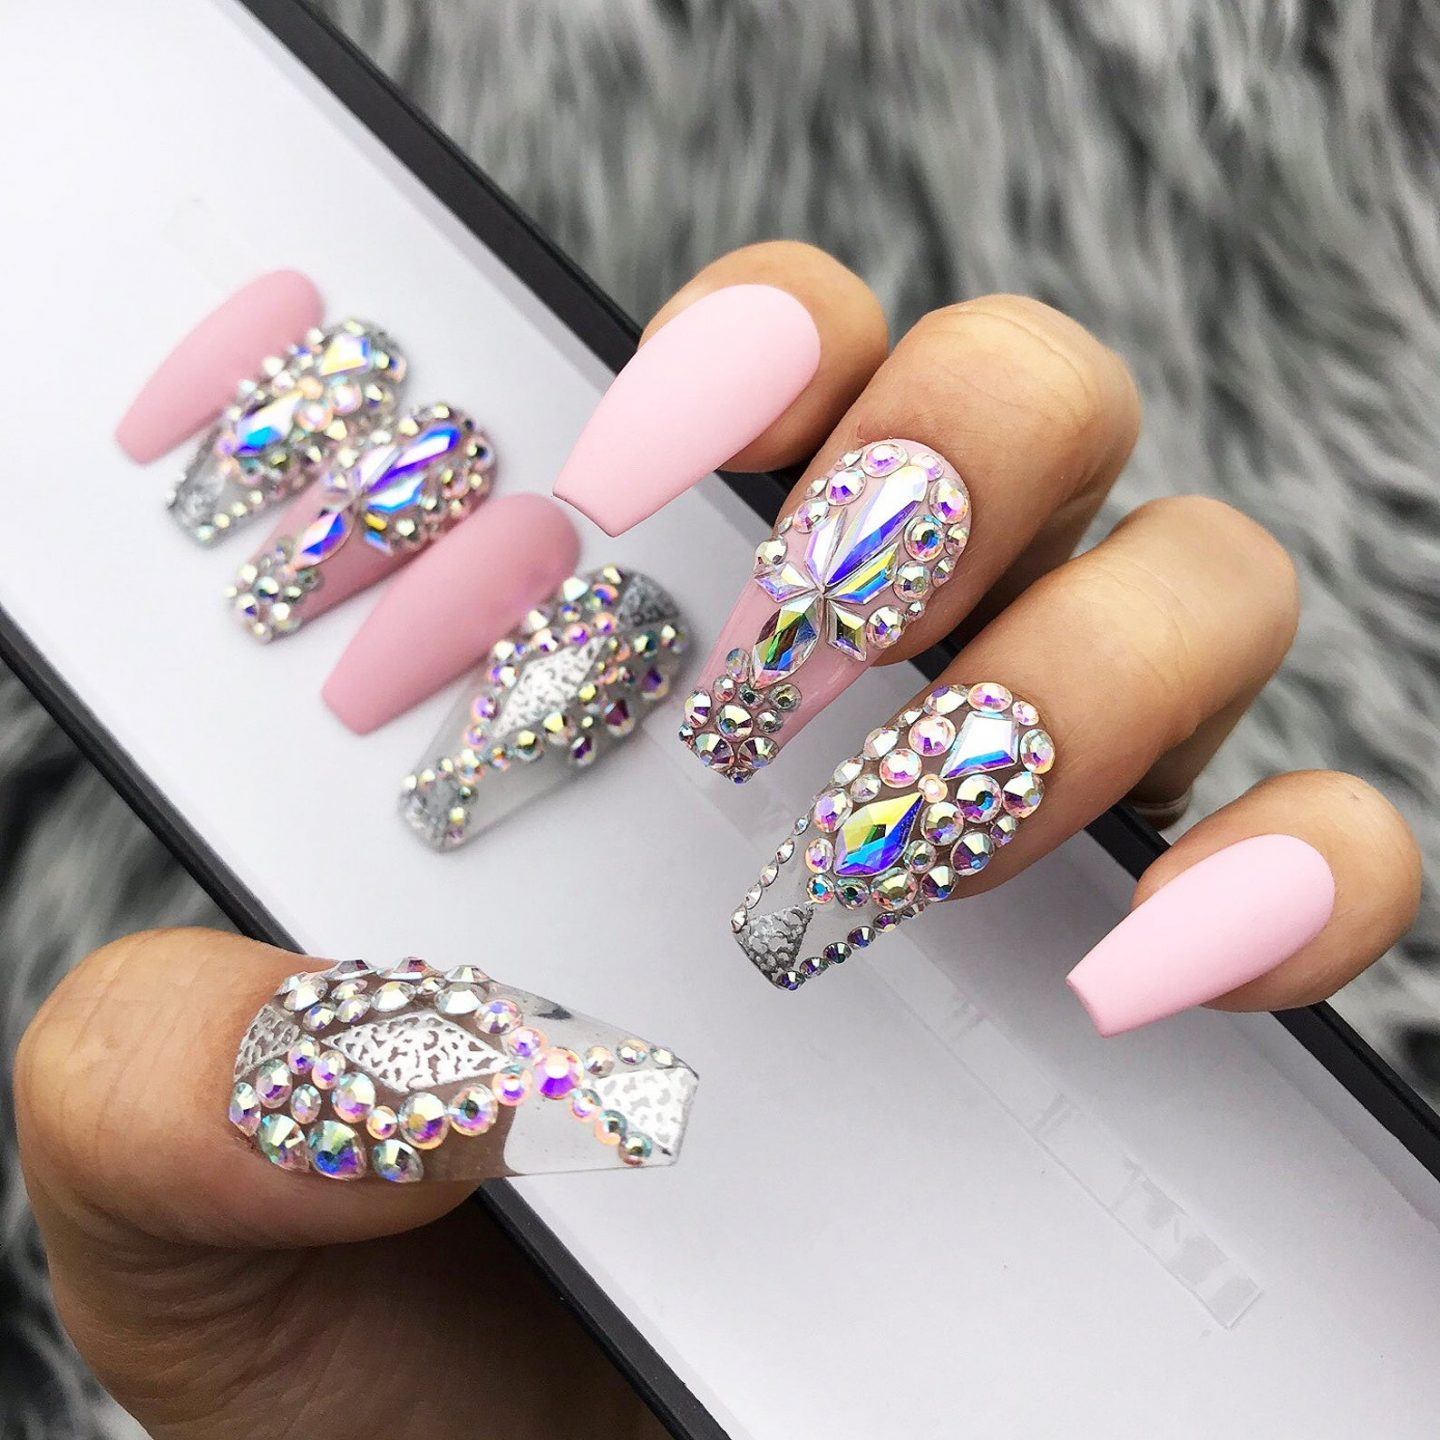 Light pink coffin nails with rhinestones